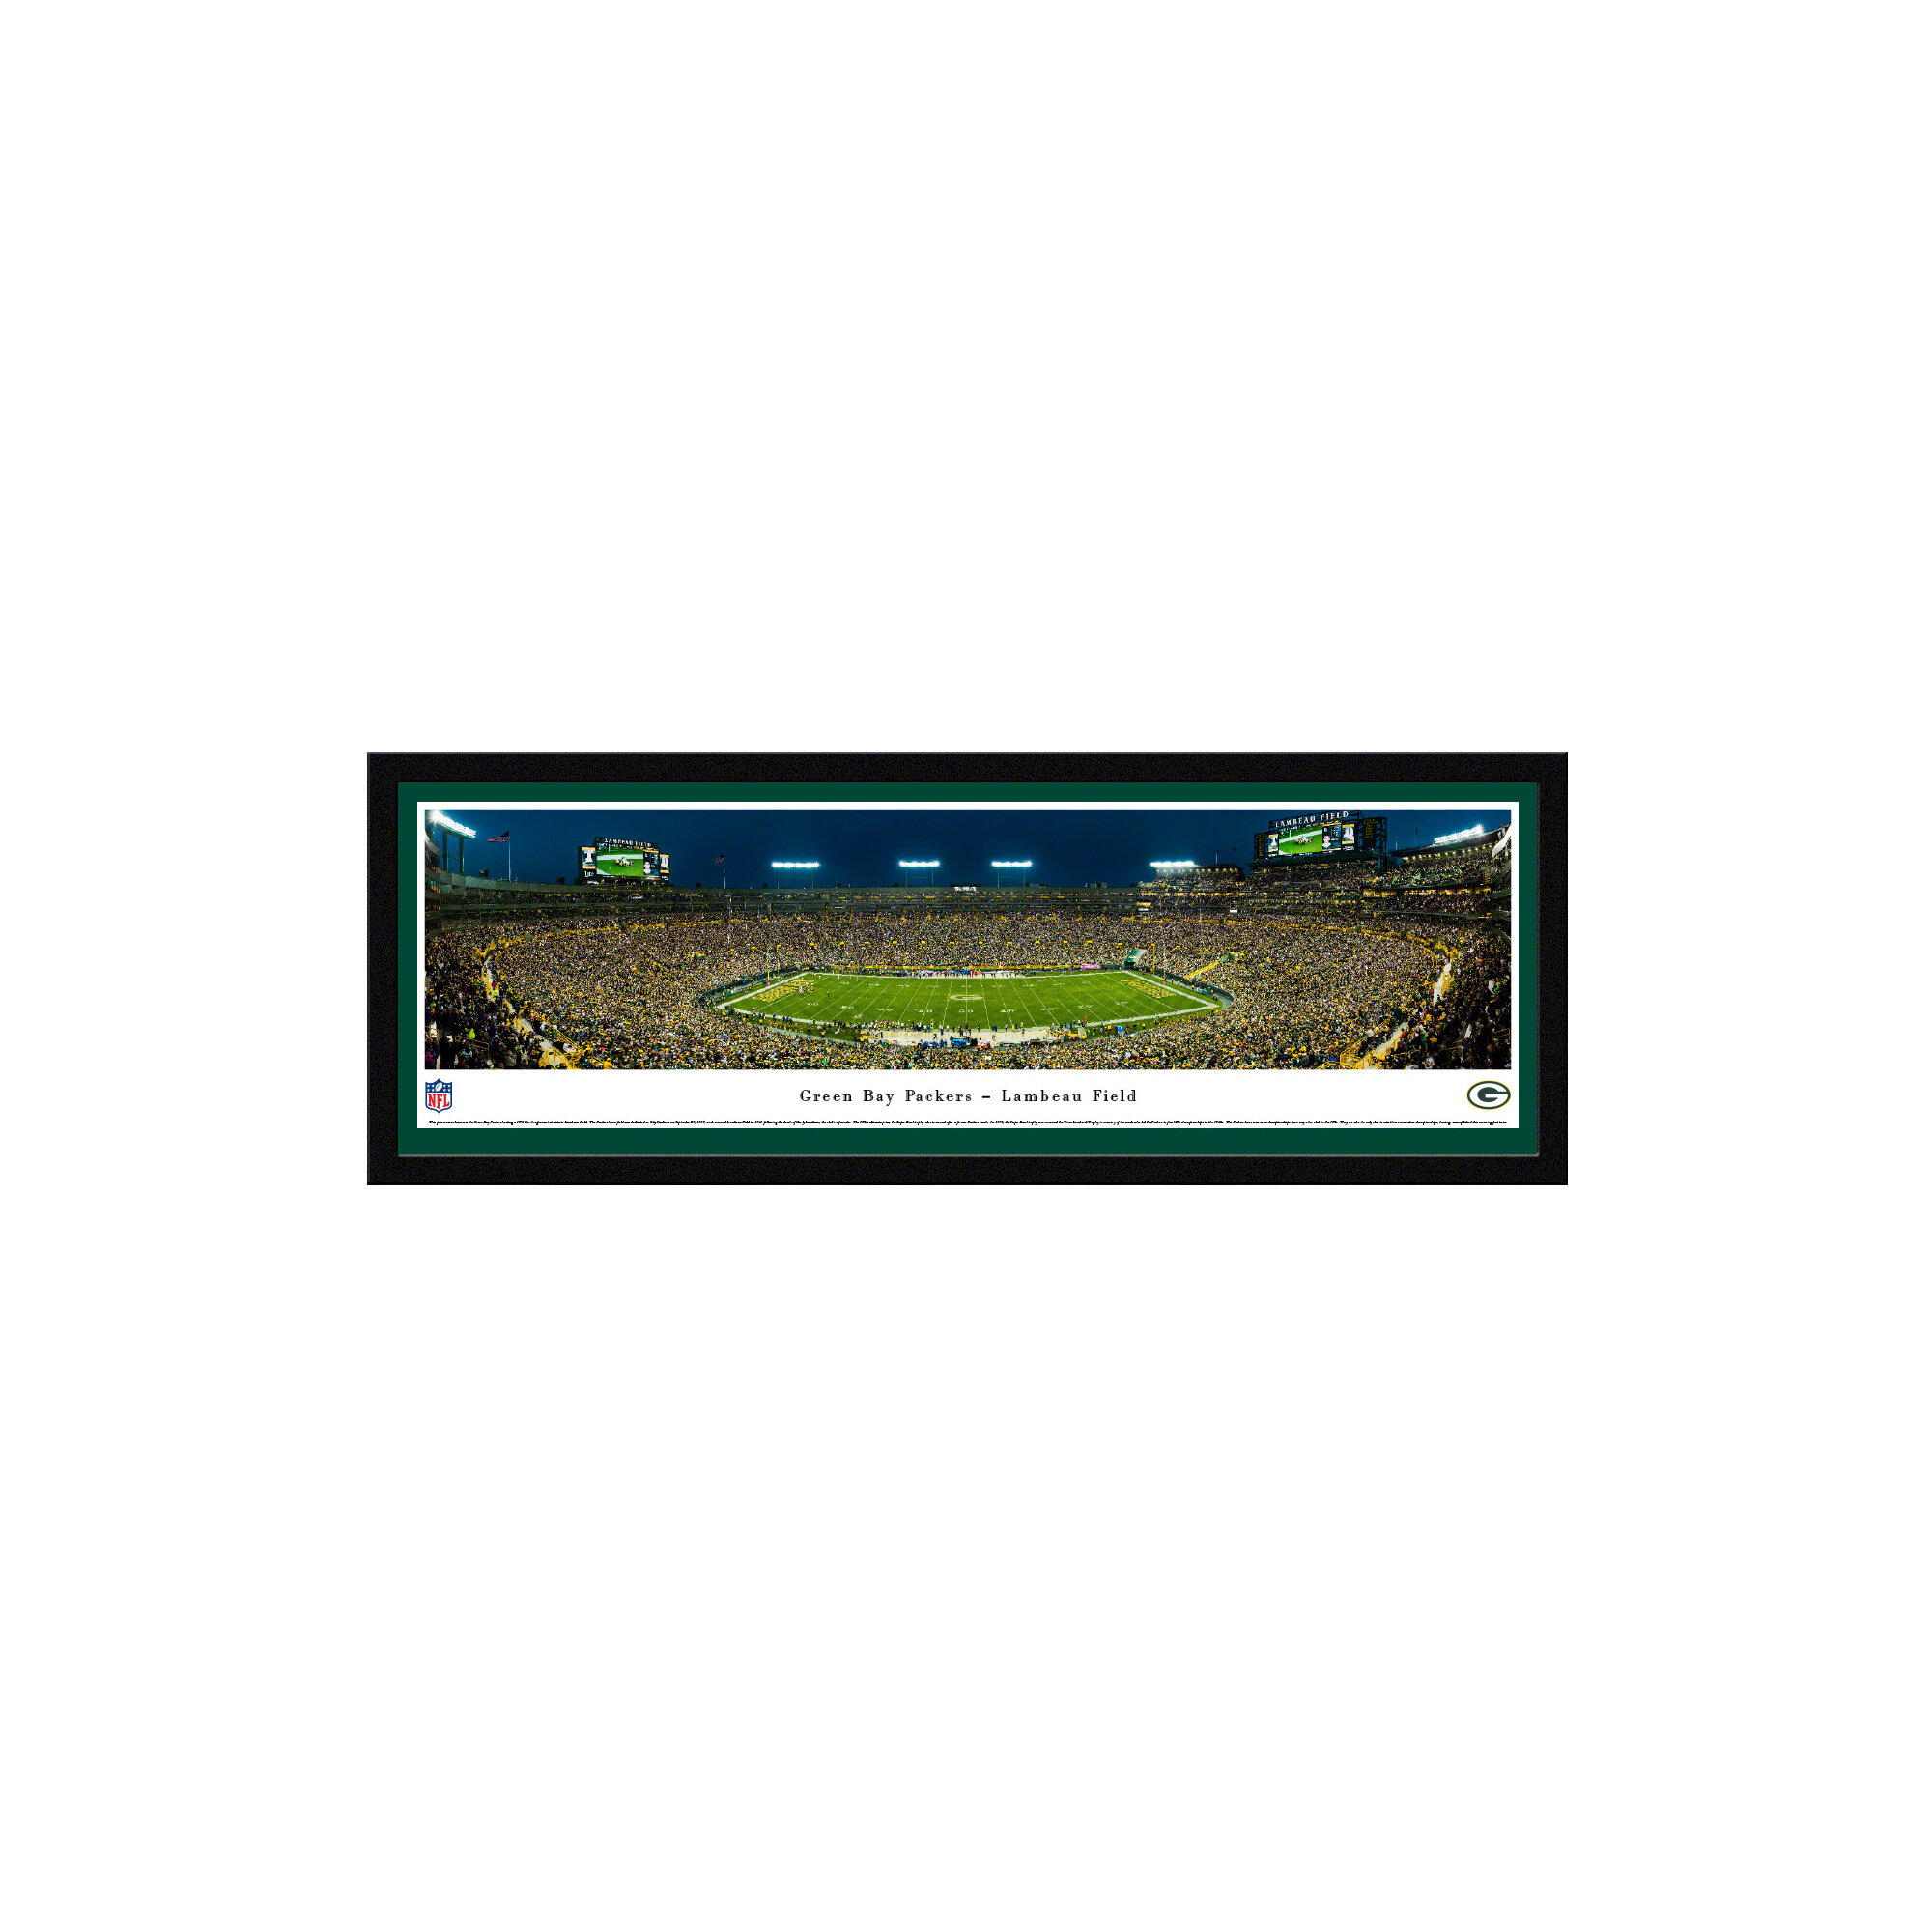 Vault W Artwork Nfl Green Bay Packers Lambeau Field By James Blakeway Picture Frame Panoramic Photographic Print On Paper Wayfair